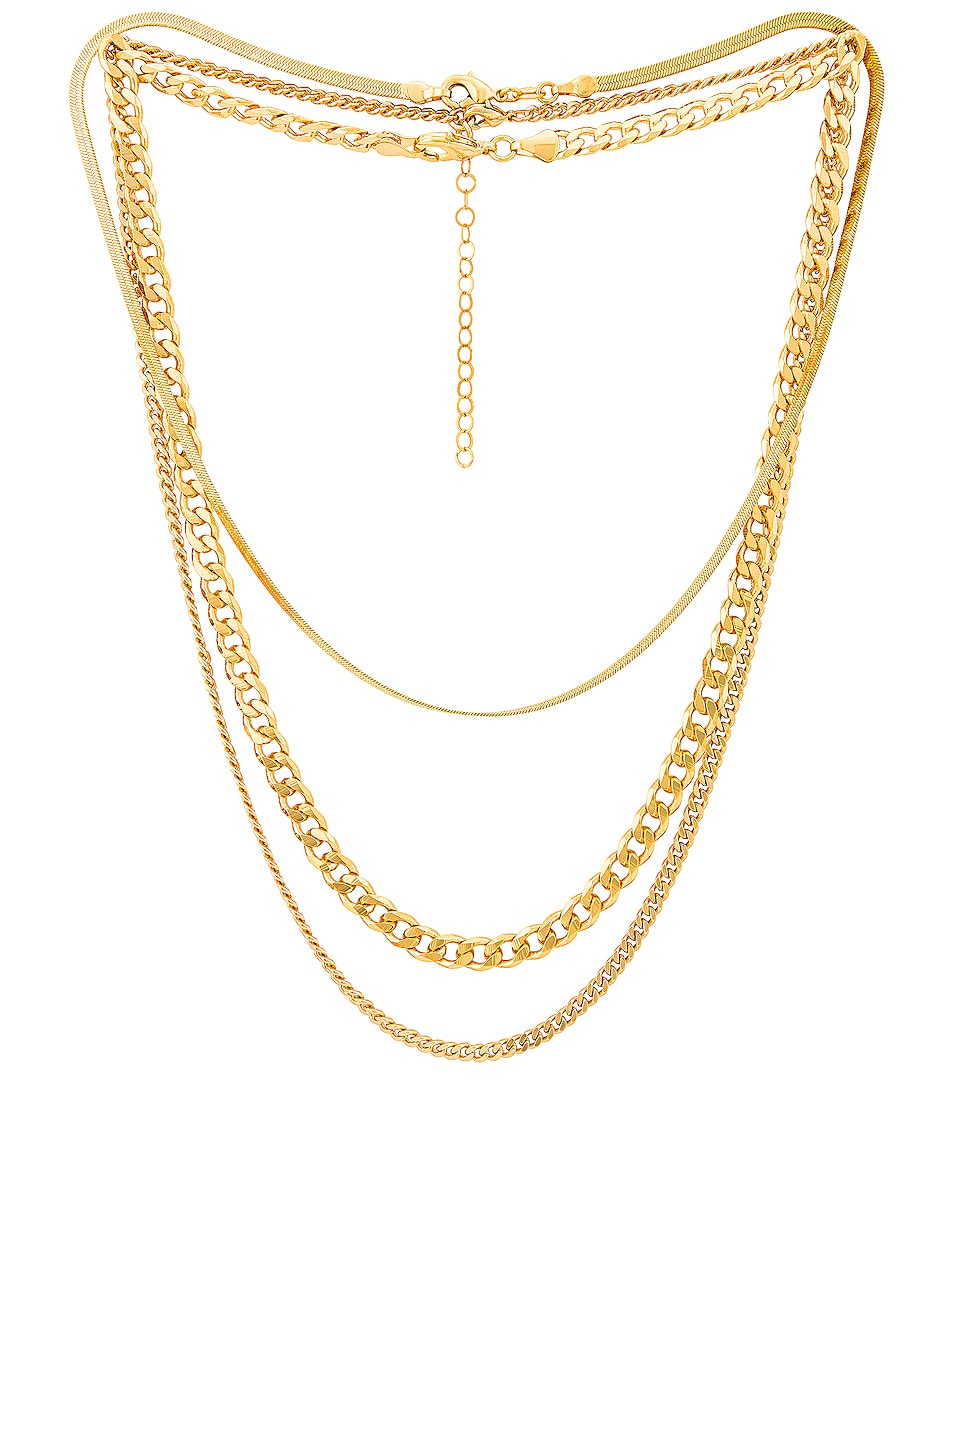 Image 1 of Jordan Road Jewelry for FWRD Sydney Necklace Stack in Gold